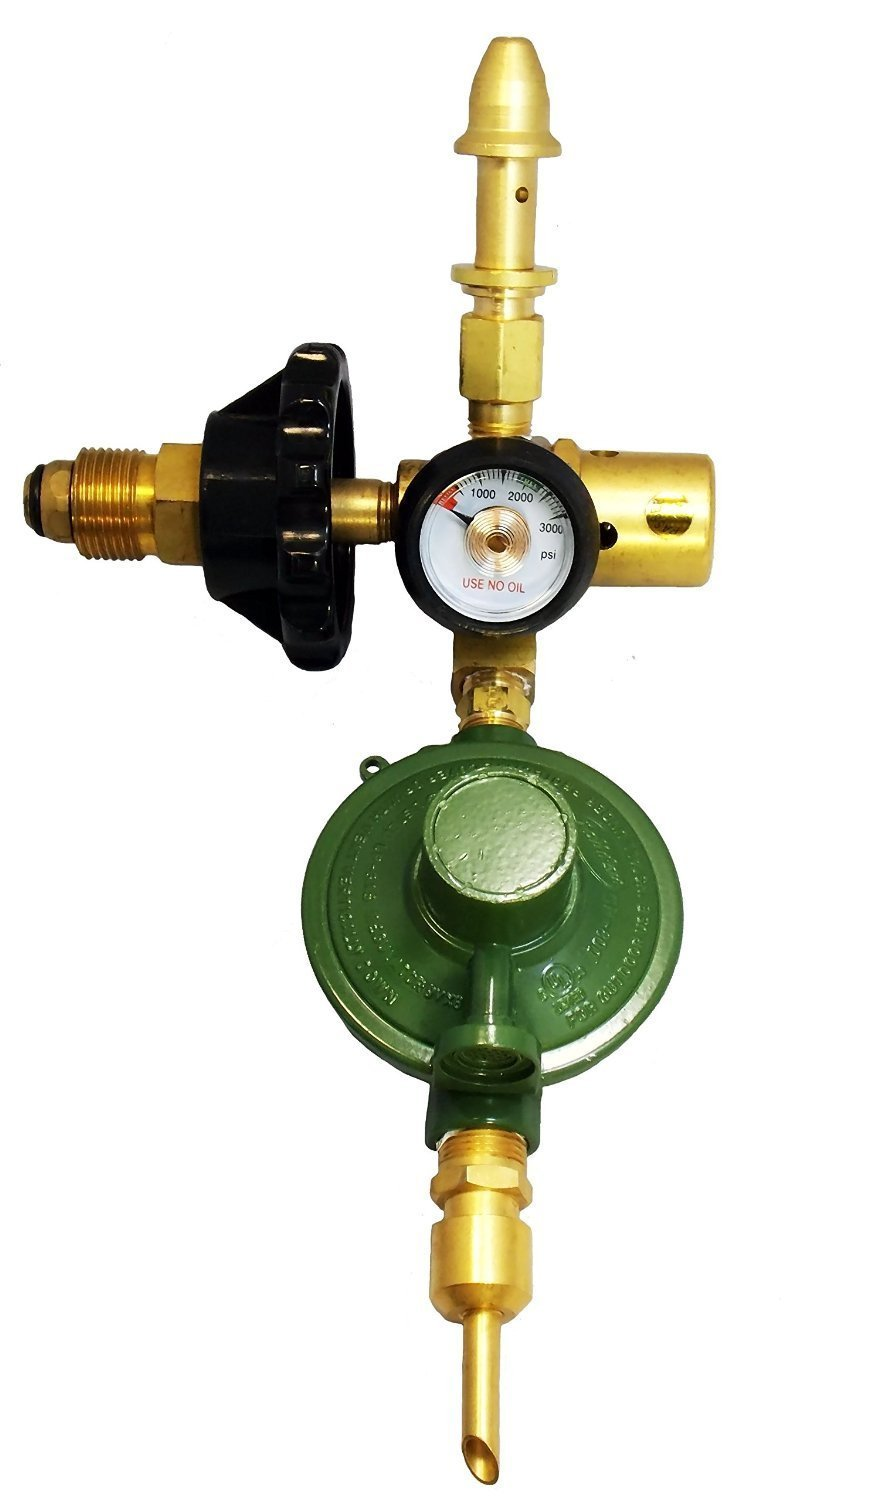 Mylar E2802HT-DV6040 Balloon Helium Filler Inflator Regulator New - Auto Shut off Valve, Hand Tight Connection (Brass Body)